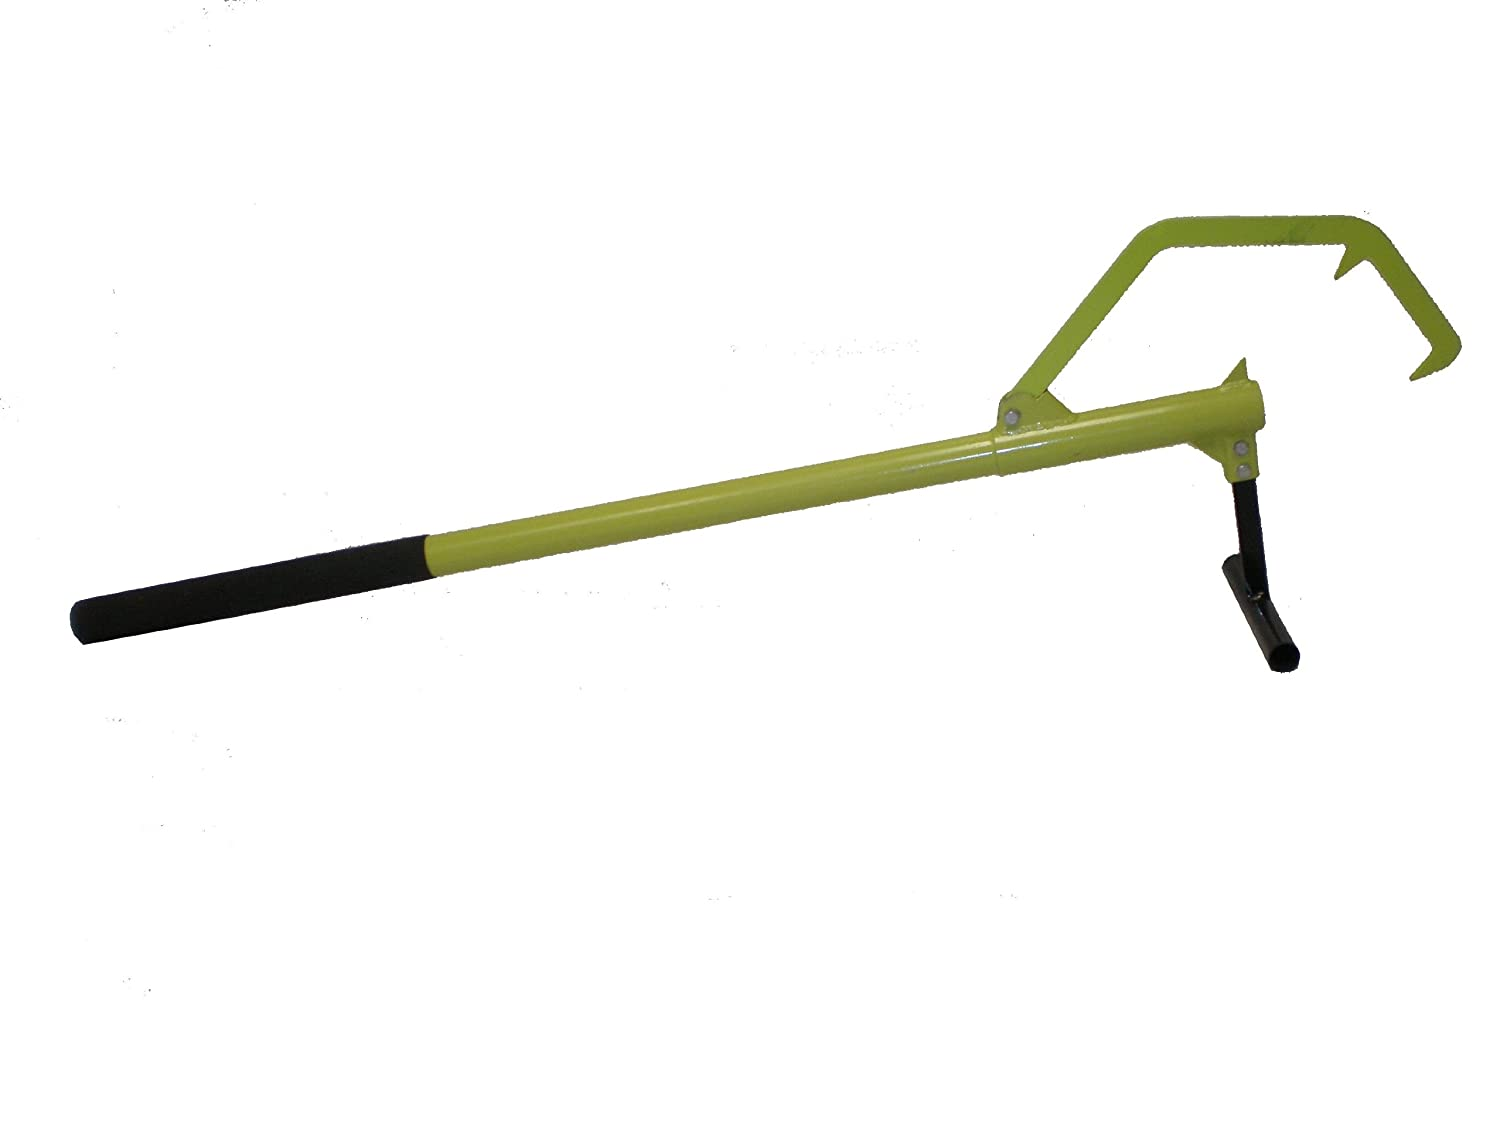 Timber Tuff TMB-65 Fiberglass Handled Timberjack